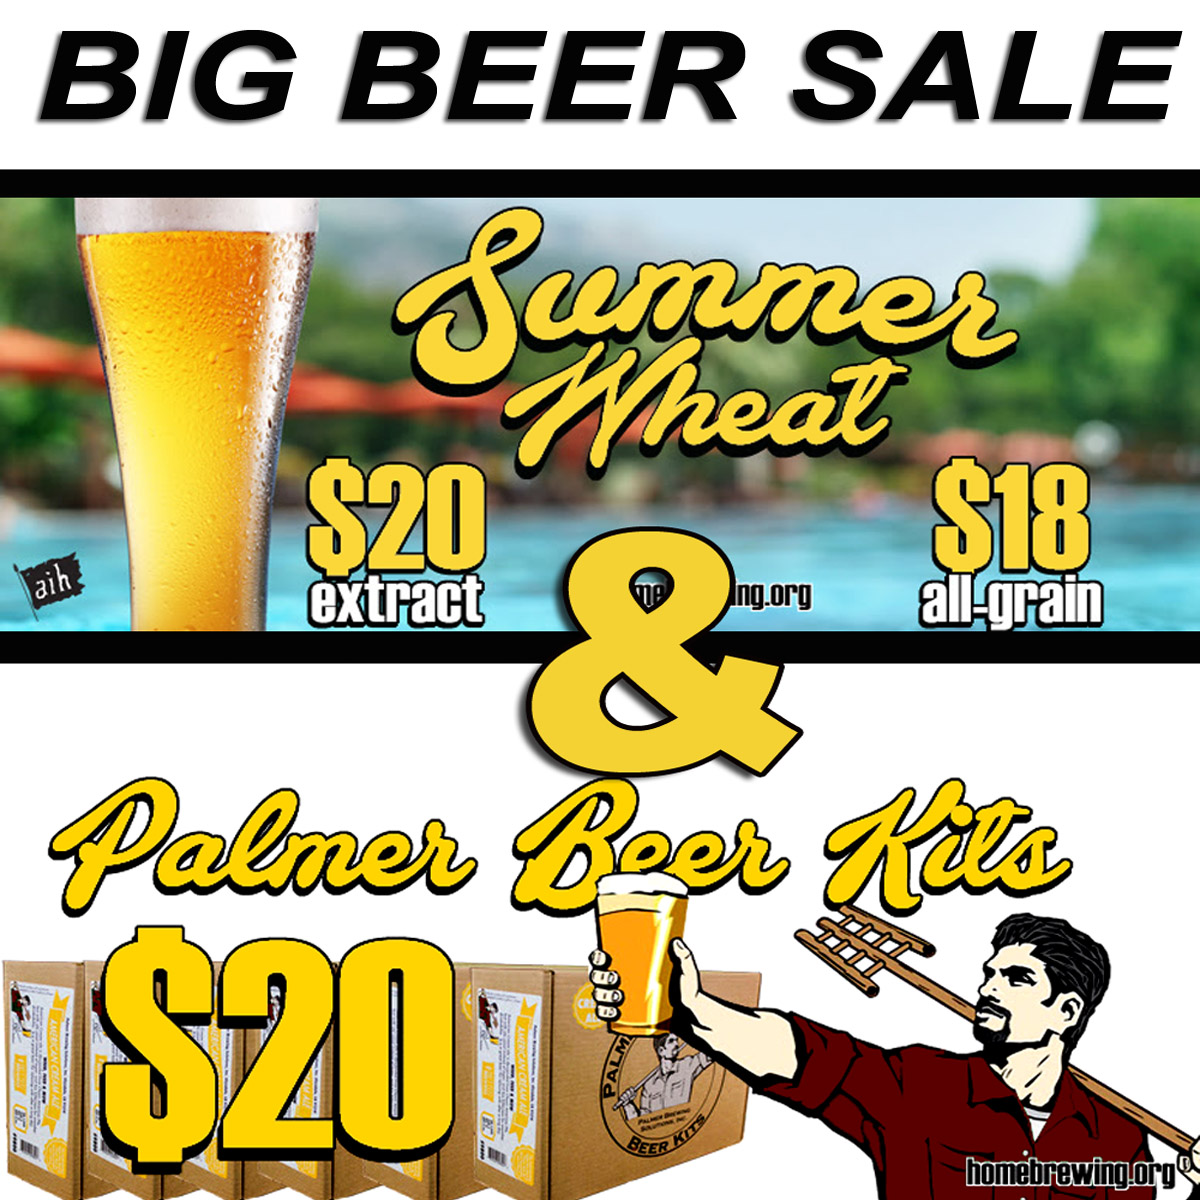 Sale For Big Beer Sale - Palmer Homebrewing Beer Kits For Just $20 Sale